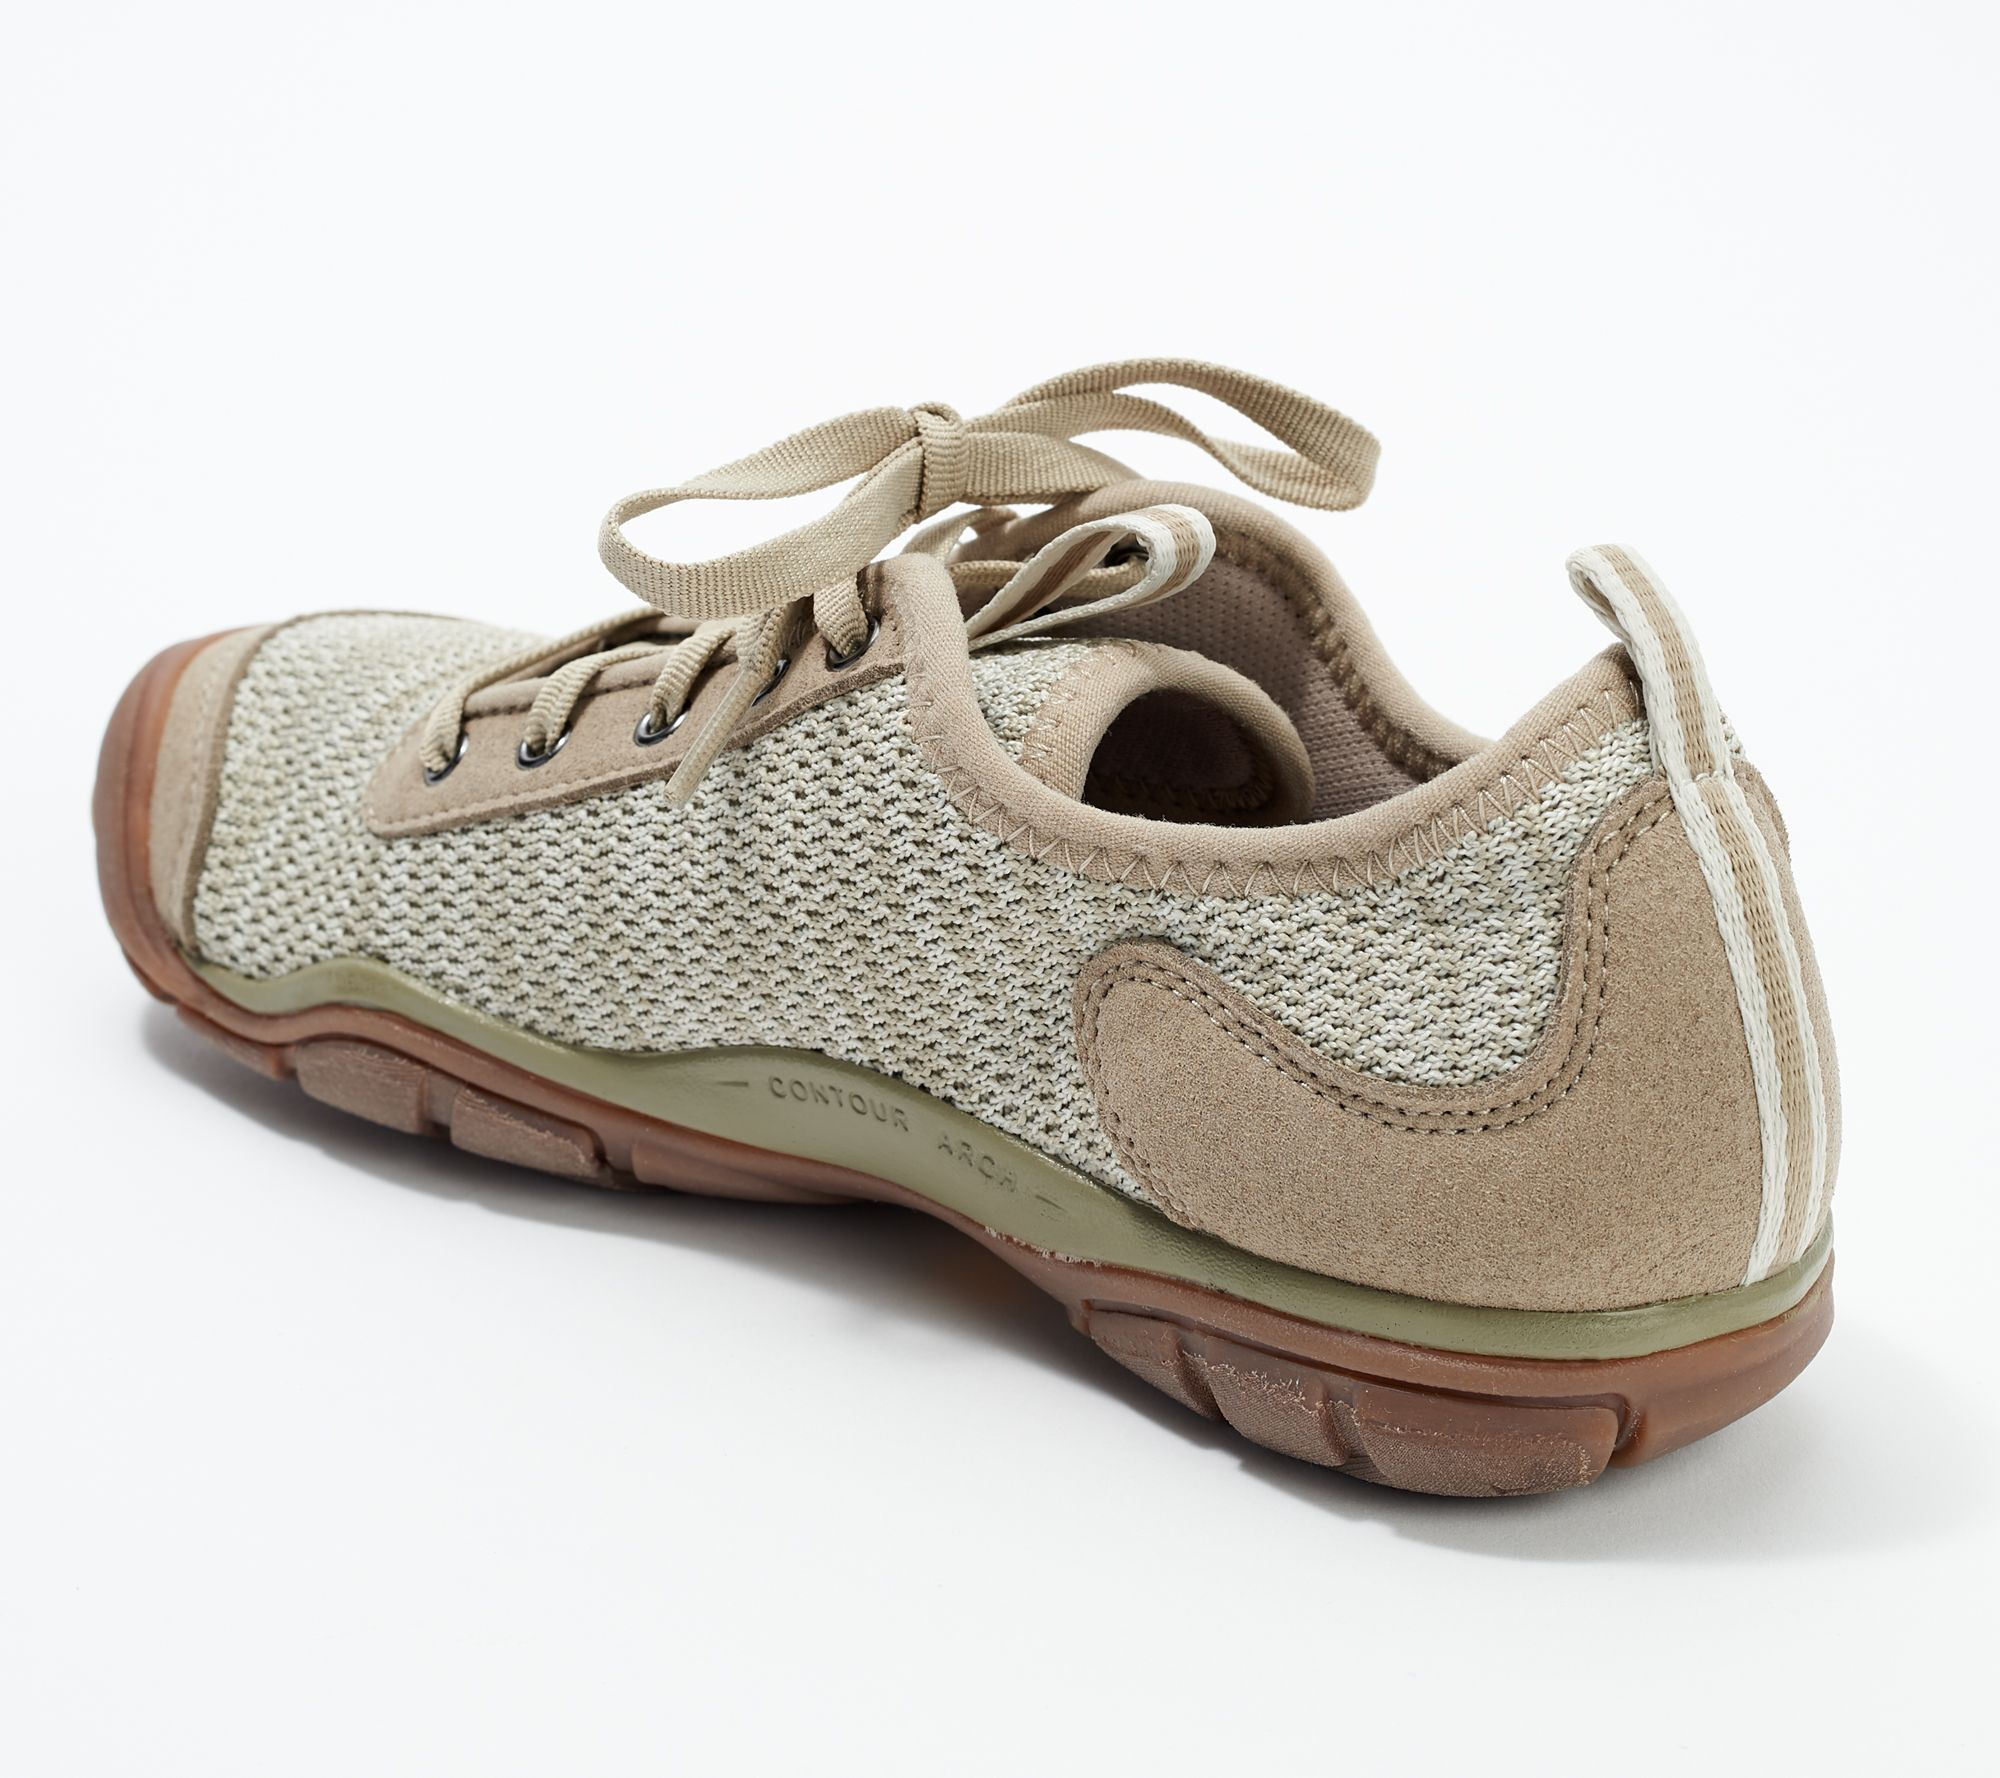 Keen Shoes Qvc